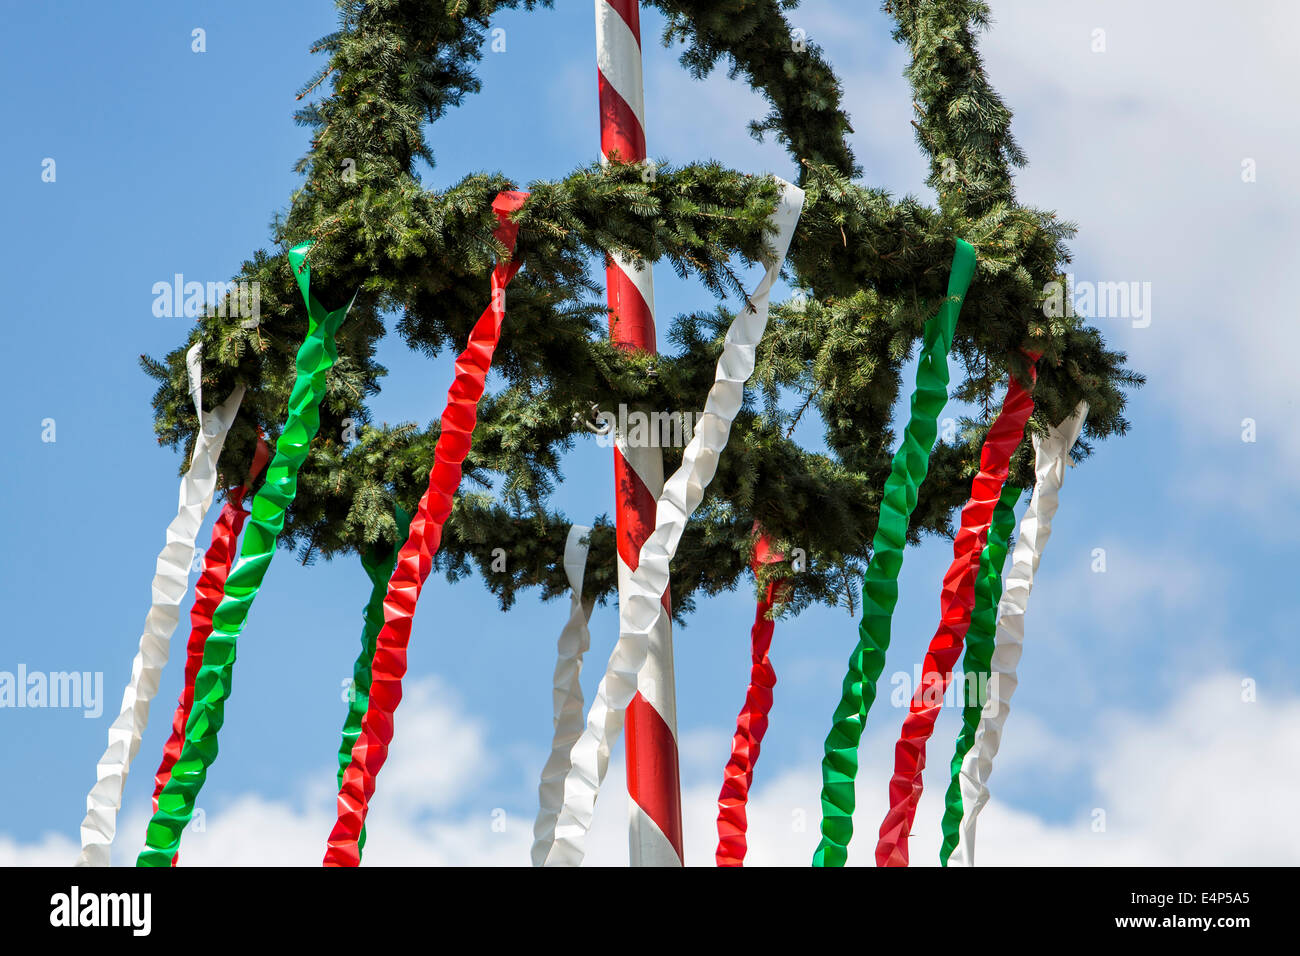 Maypole, erected by the local volunteer fire department, - Stock Image